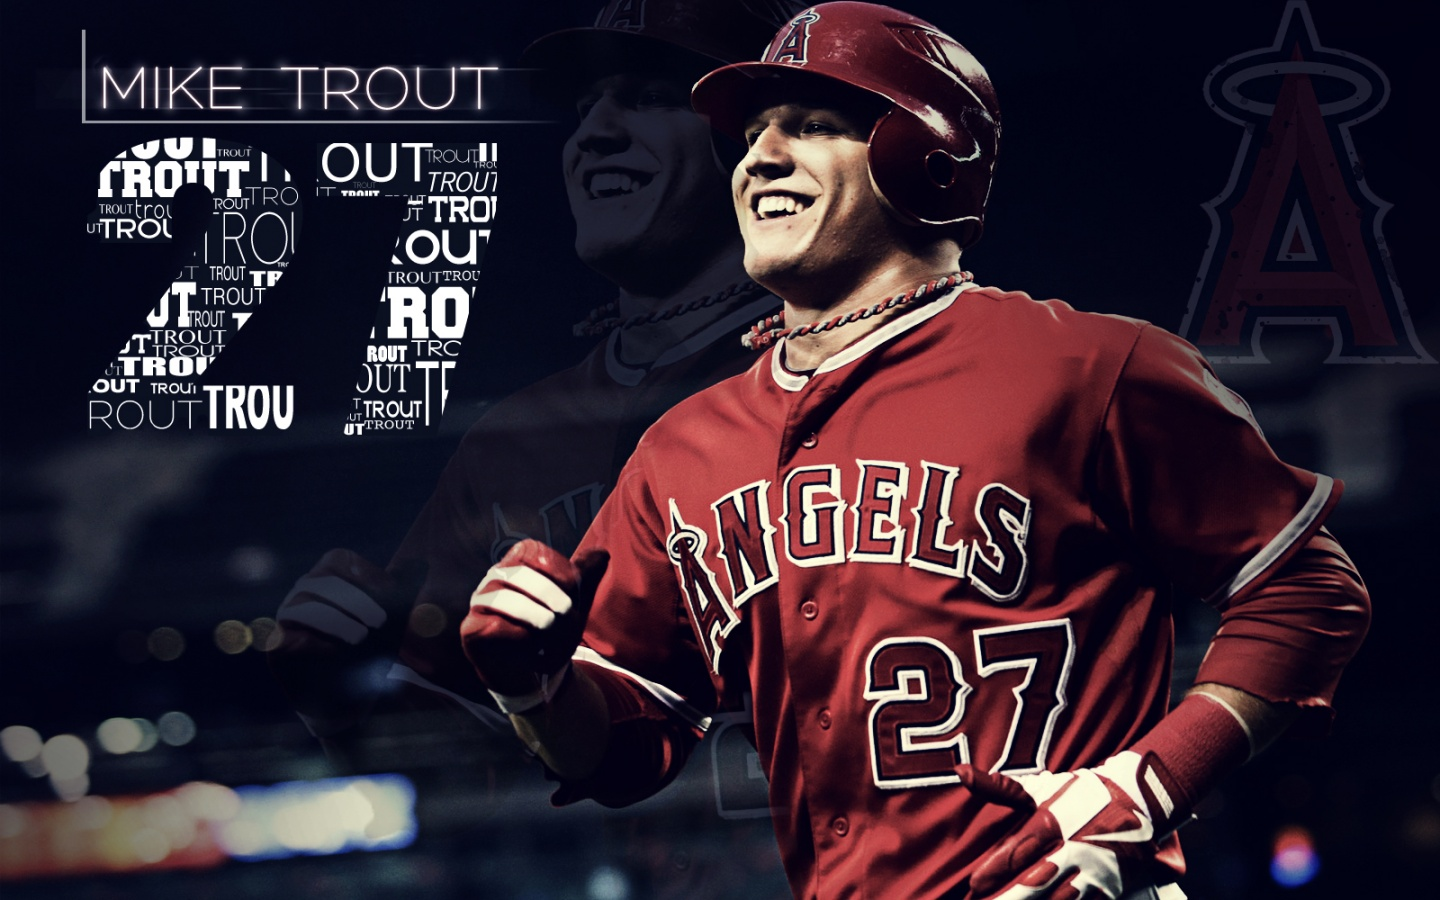 Download Mike Trout wallpaper wallpaper | Unknown